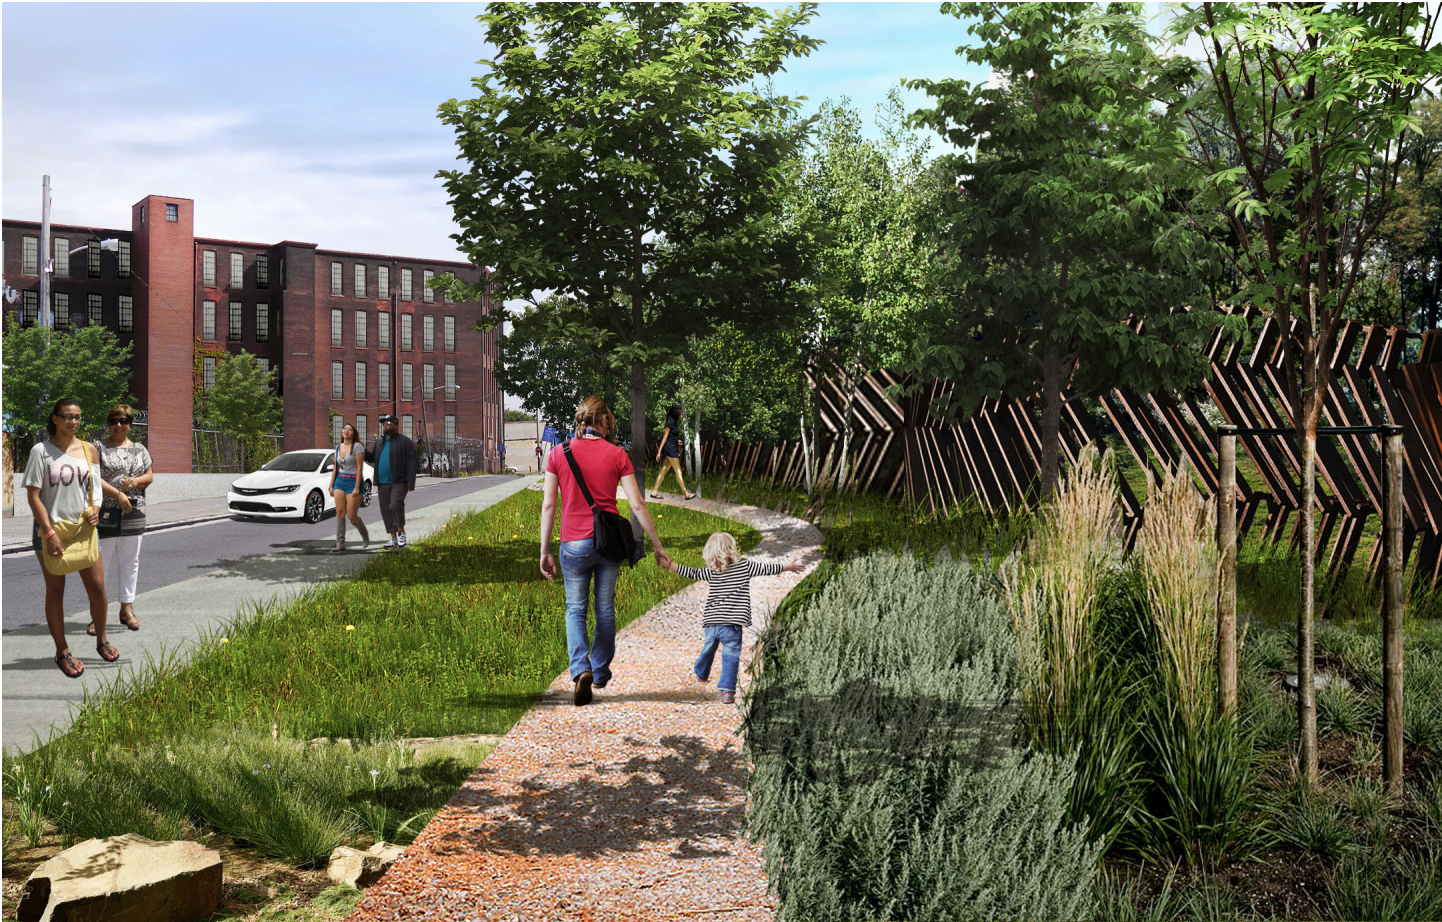 A rendering showing Impact Services' concept for a greenway alongside the Conrail tracks on Tusculum Street. (Impact Services)